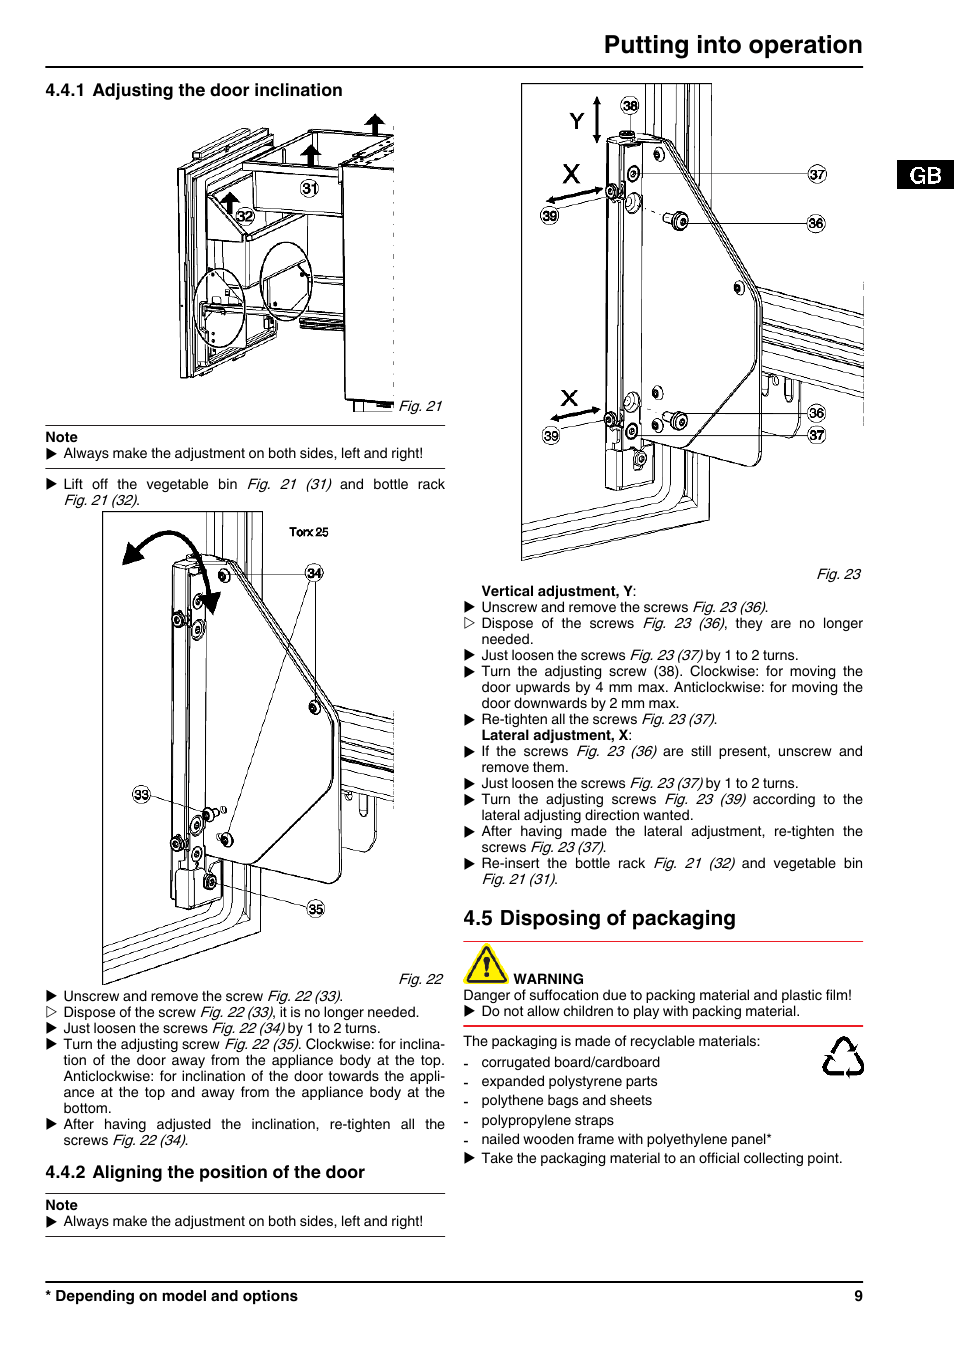 1adjusting the door inclination, 2aligning the position of